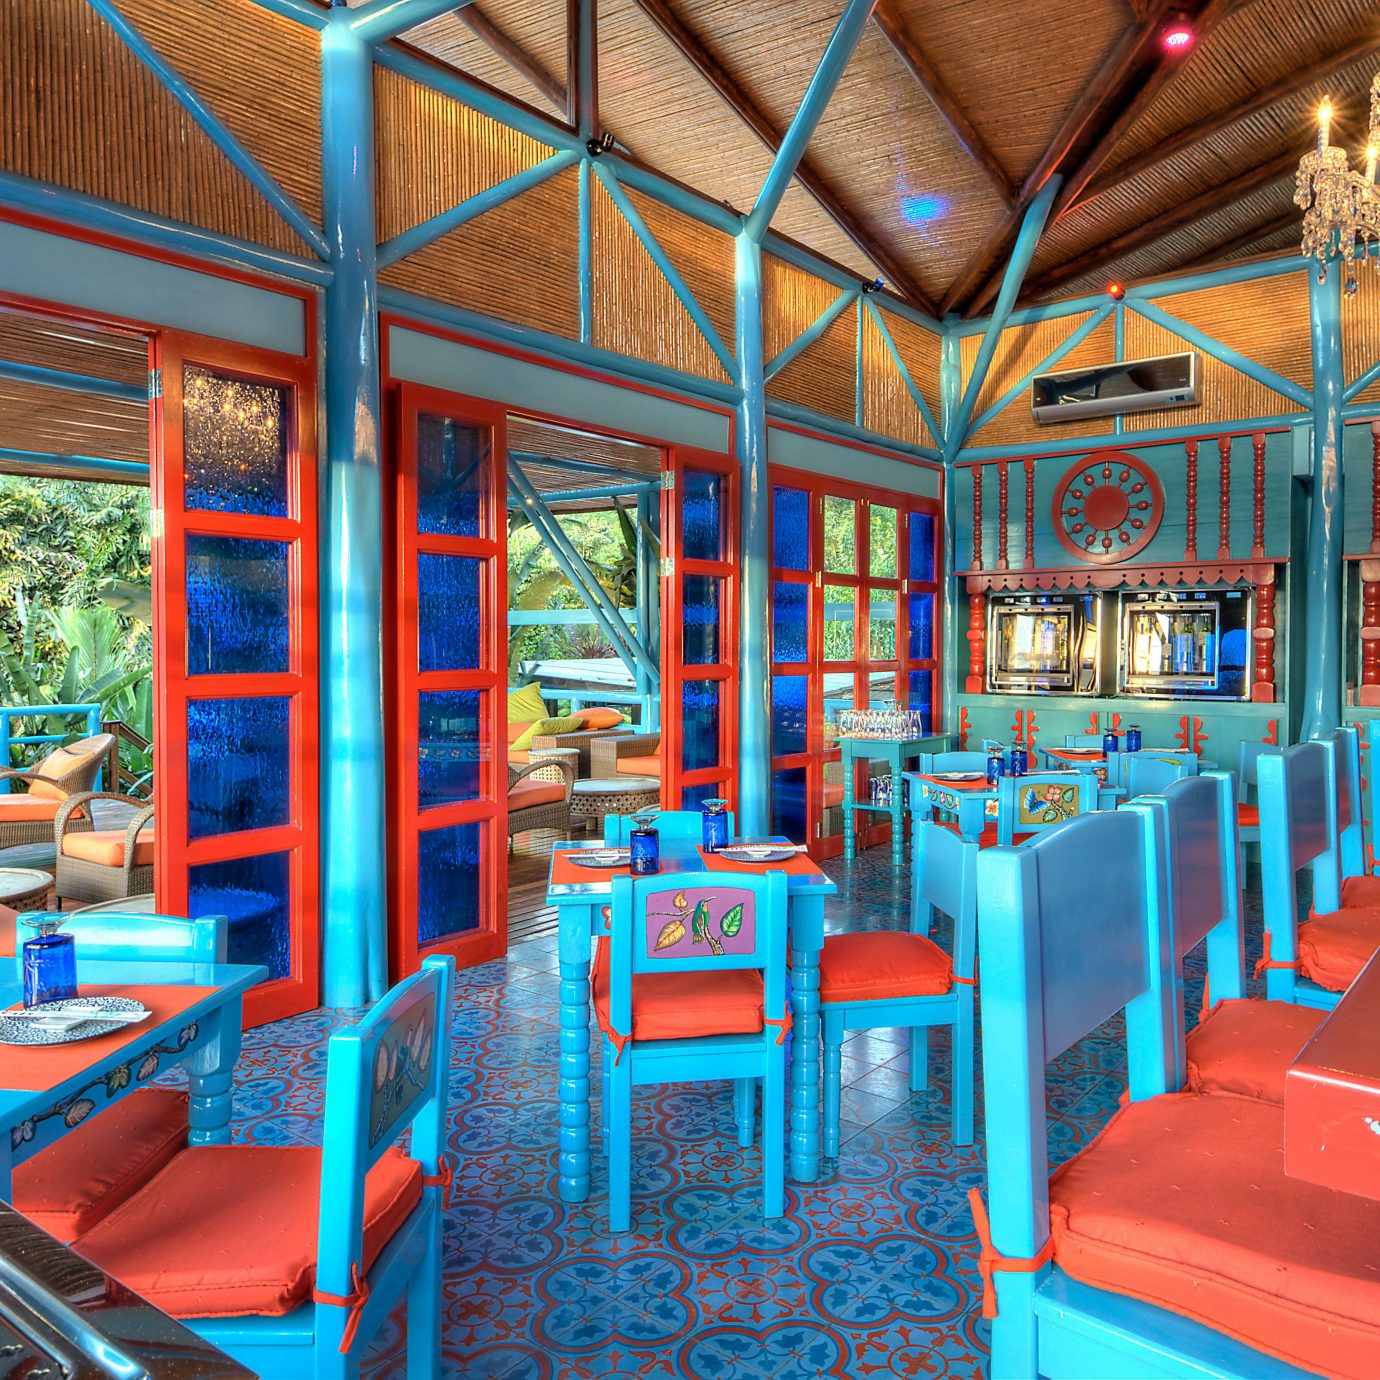 Country Dining Drink Eat Eco Jungle Romantic Rustic chair leisure restaurant amusement park Resort colorful orange set colored